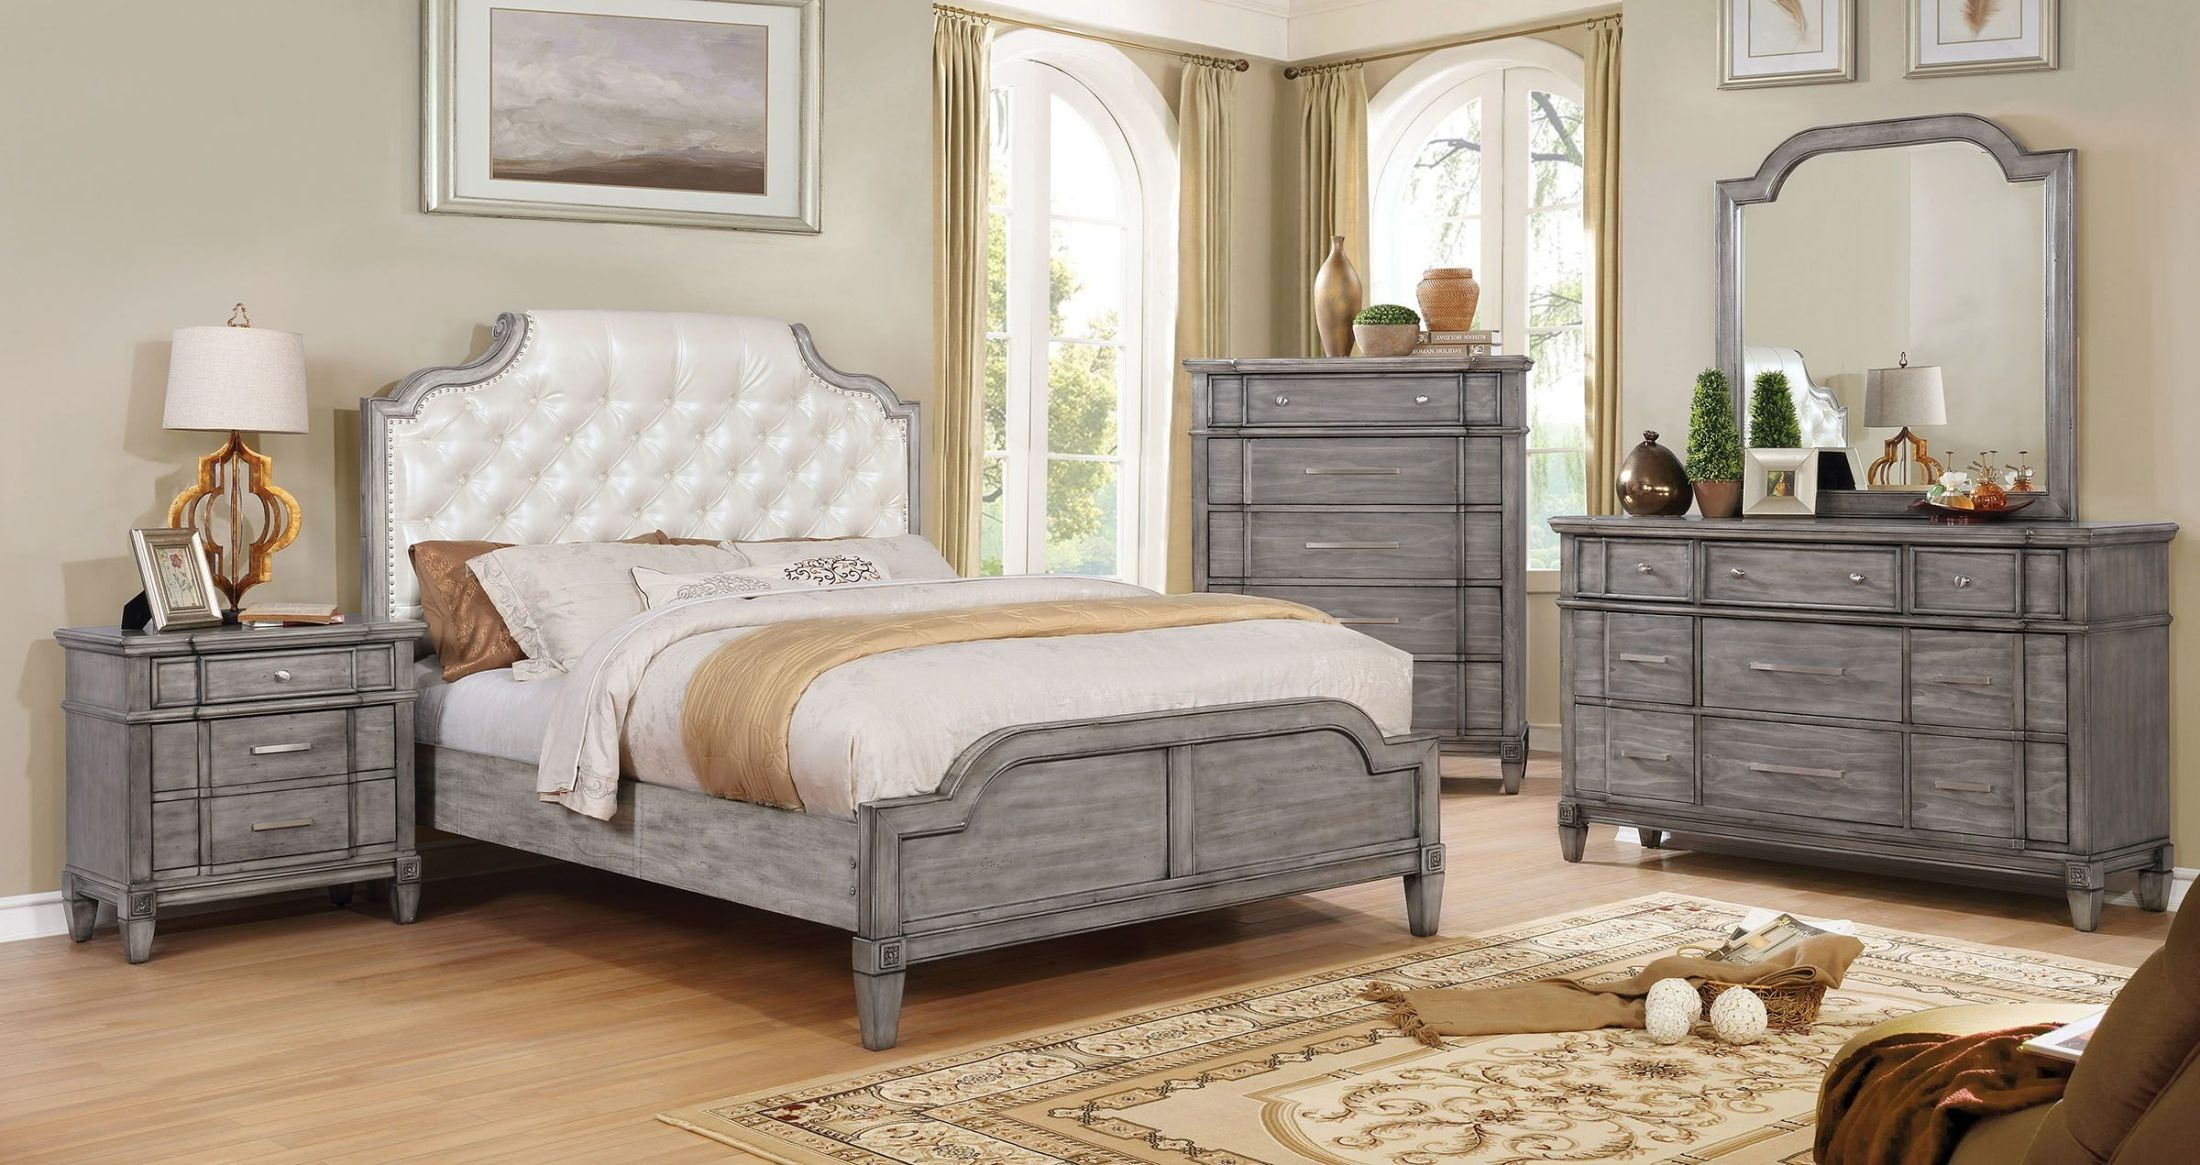 ganymede upholstered panel bedroom set from furniture of america coleman furniture. Black Bedroom Furniture Sets. Home Design Ideas